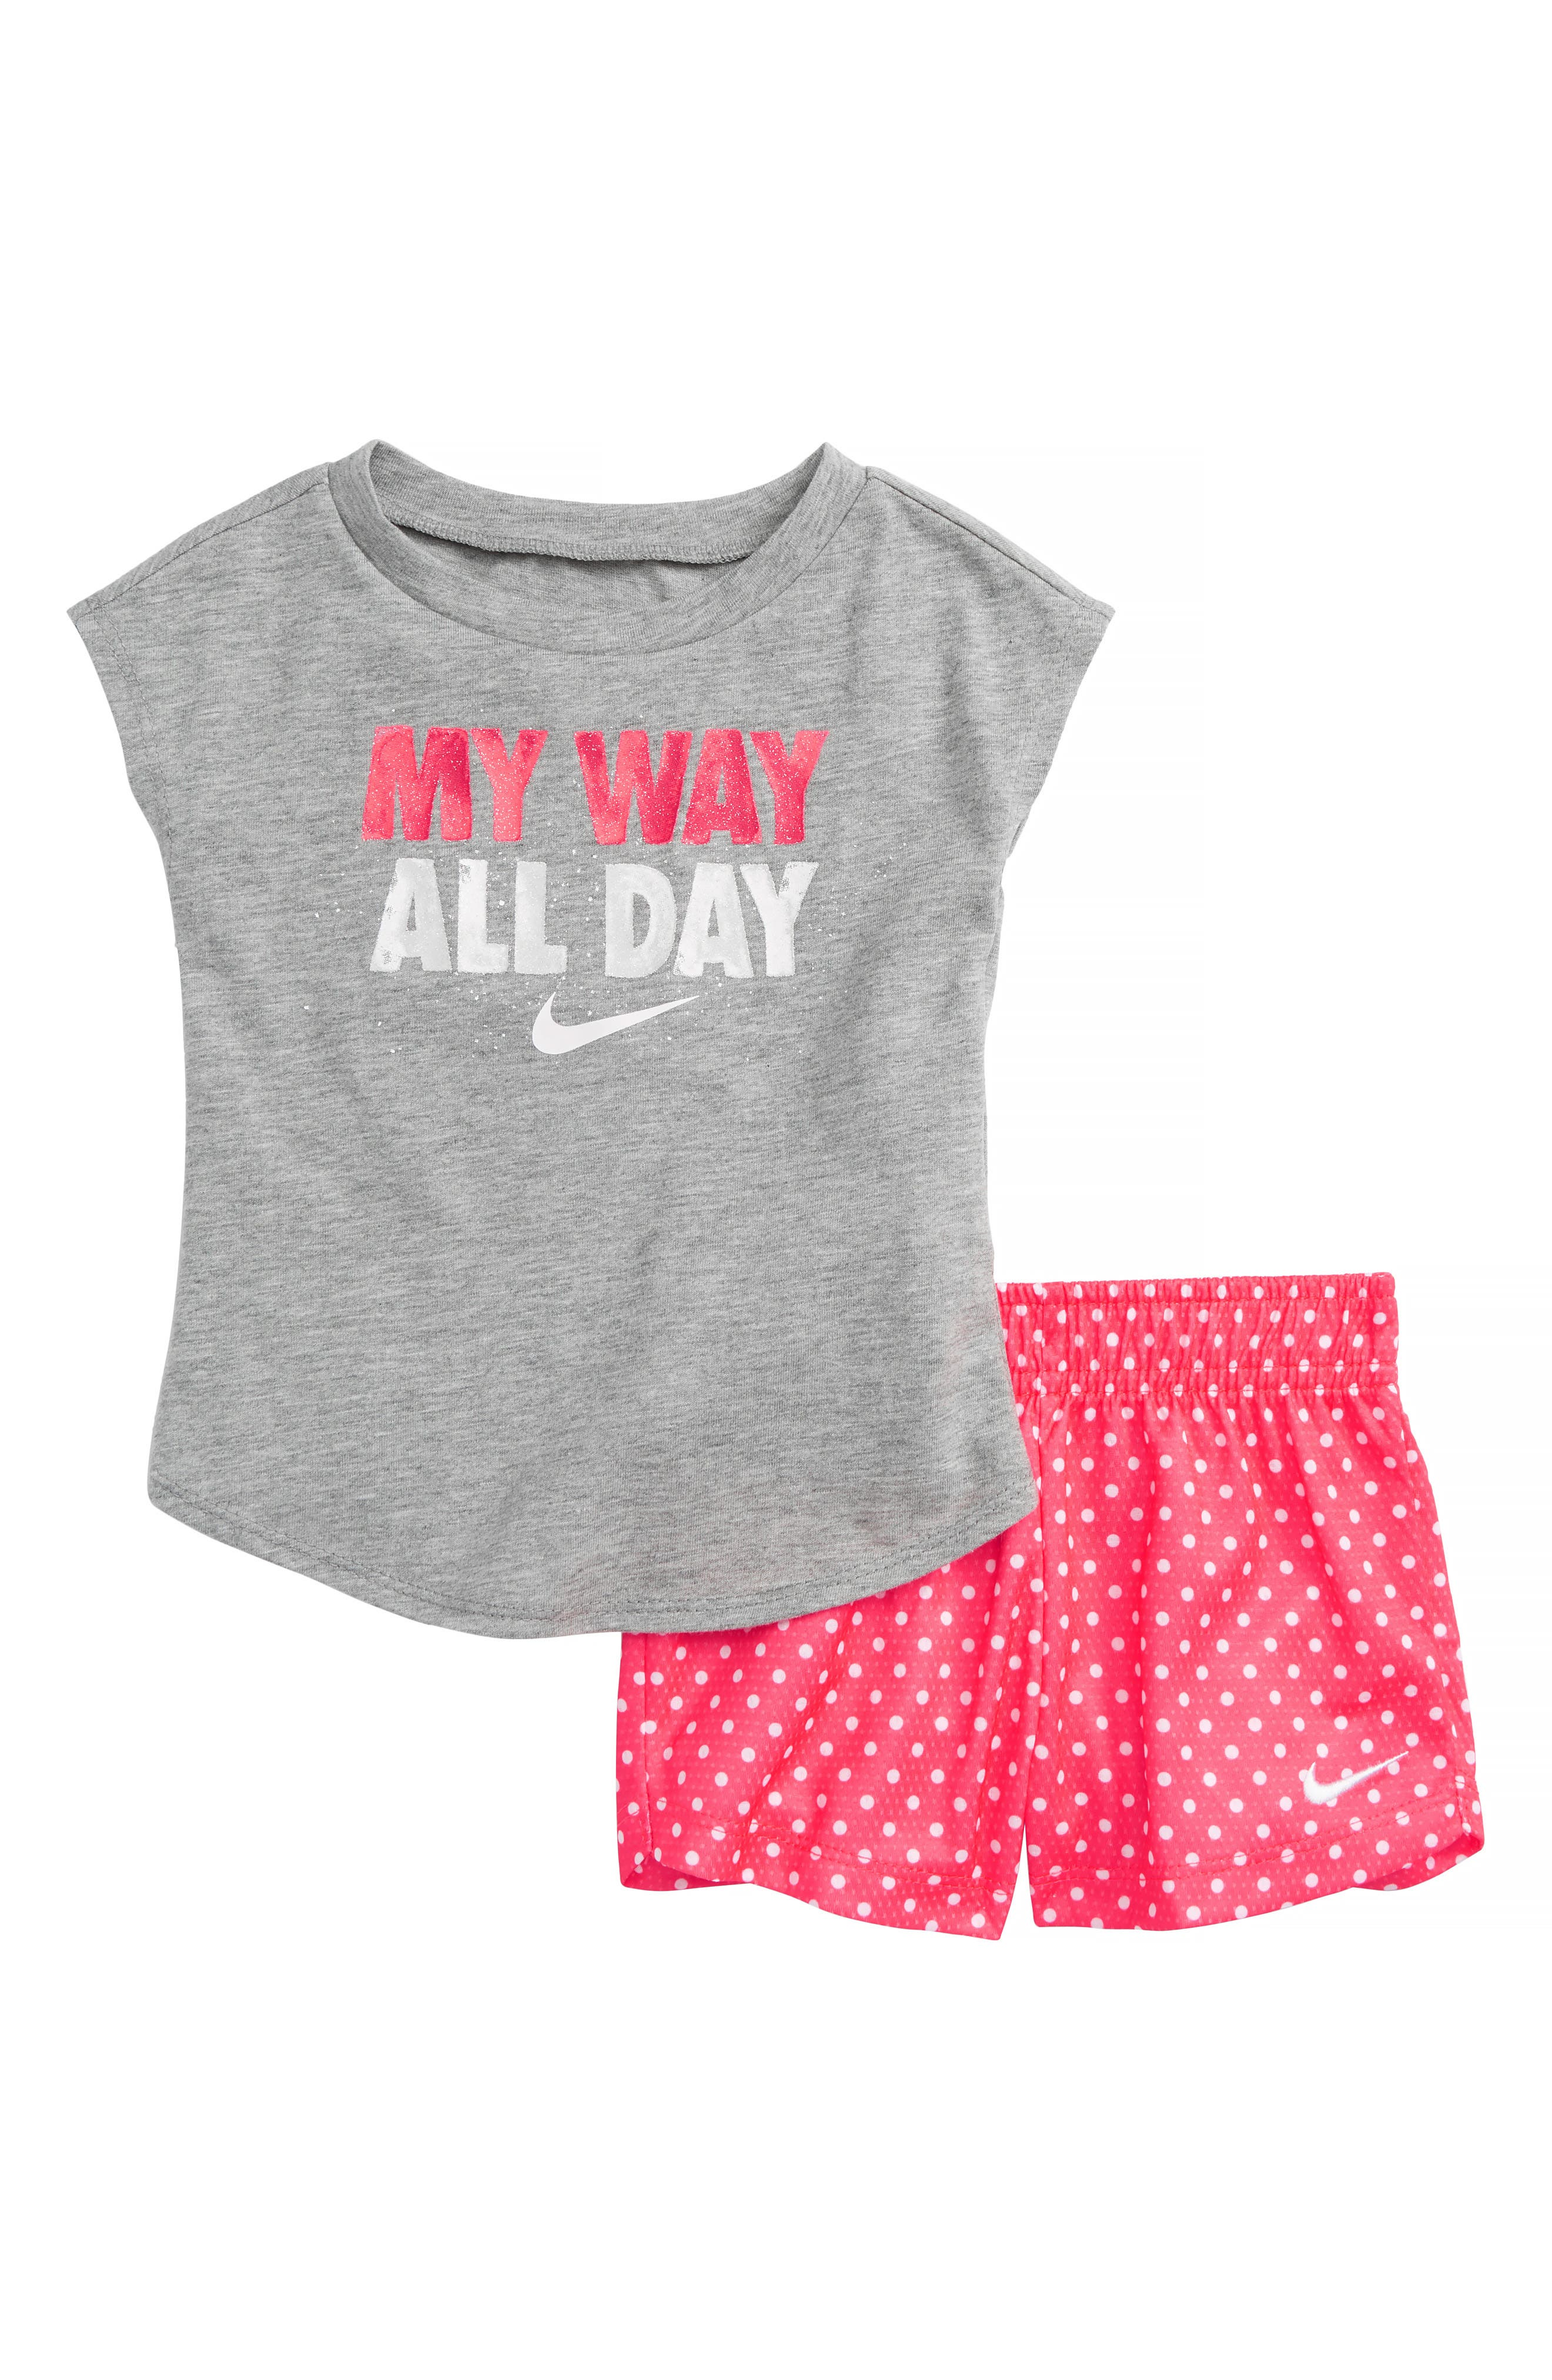 Alternate Image 1 Selected - Nike My Way All Day Graphic Tee & Shorts Set (Baby Girls)